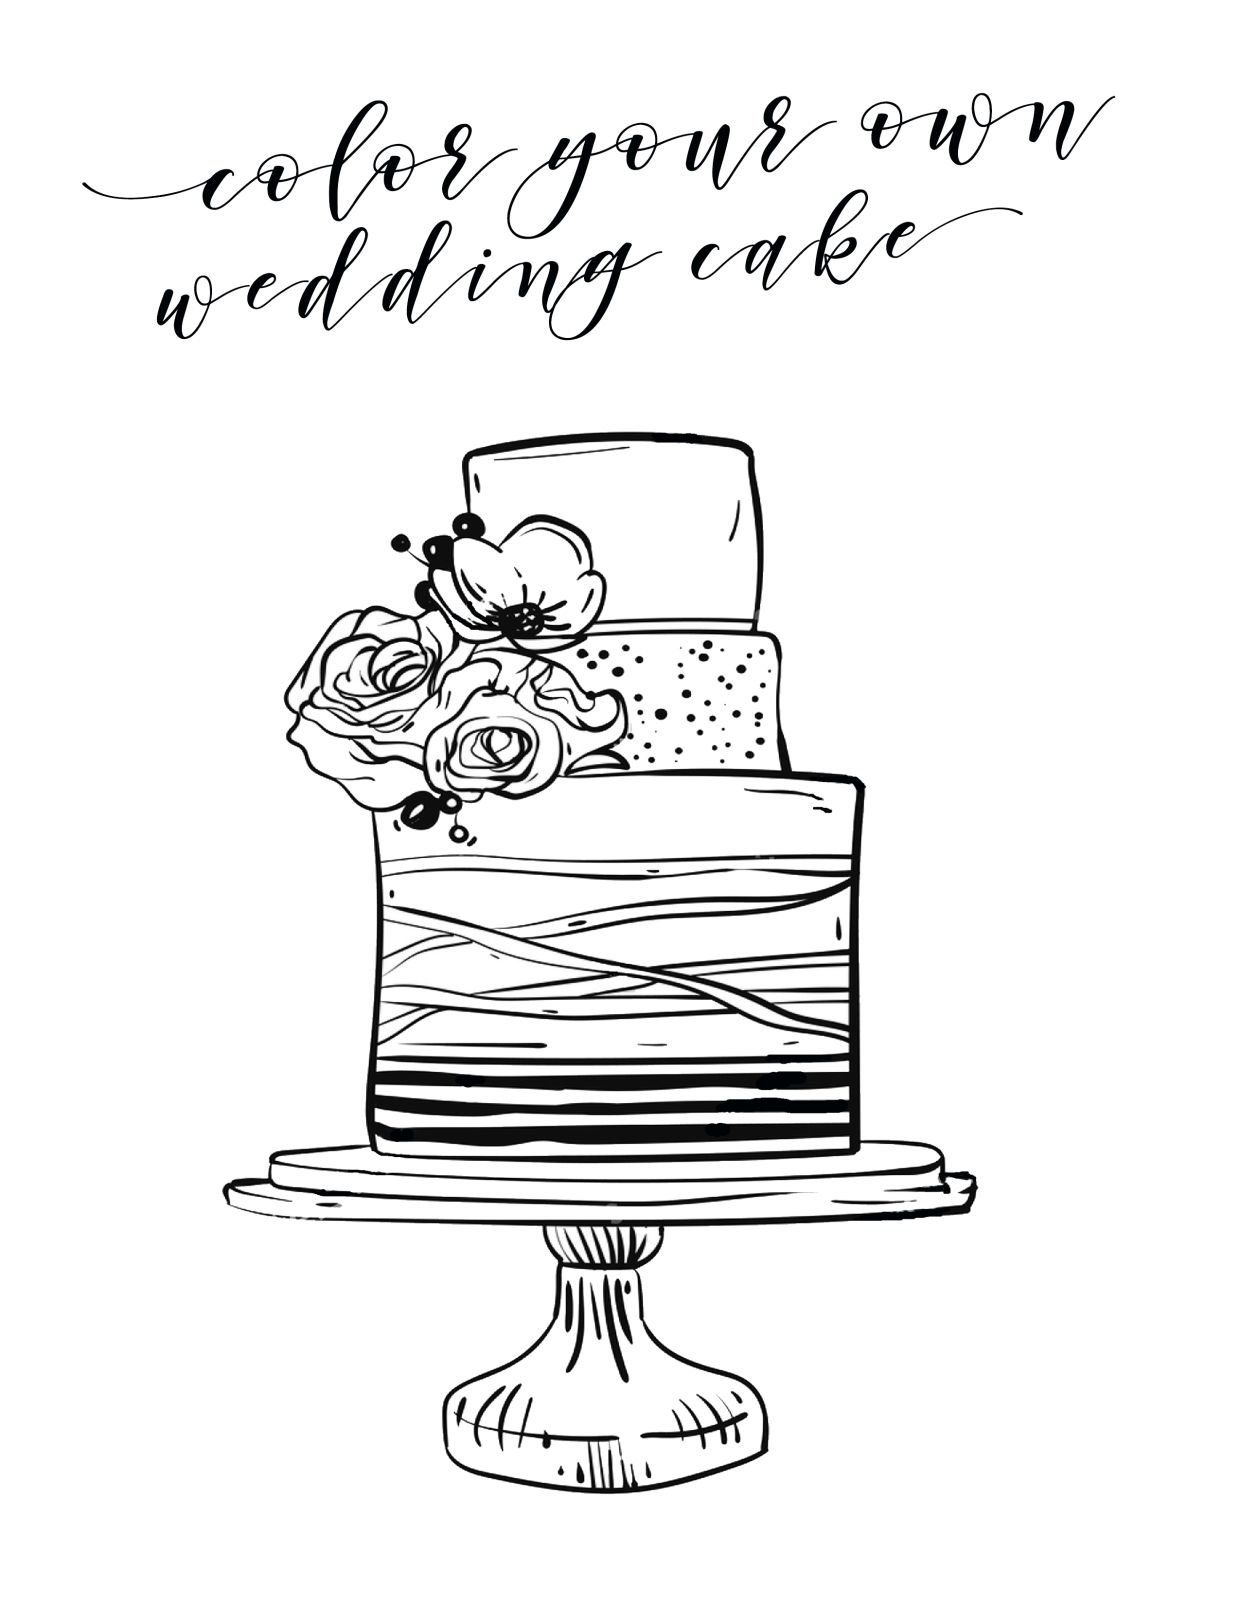 Free Printable Kids Coloring Page For Your Wedding Reception Wedding Coloring Pages Coloring Pages For Kids Coloring For Kids